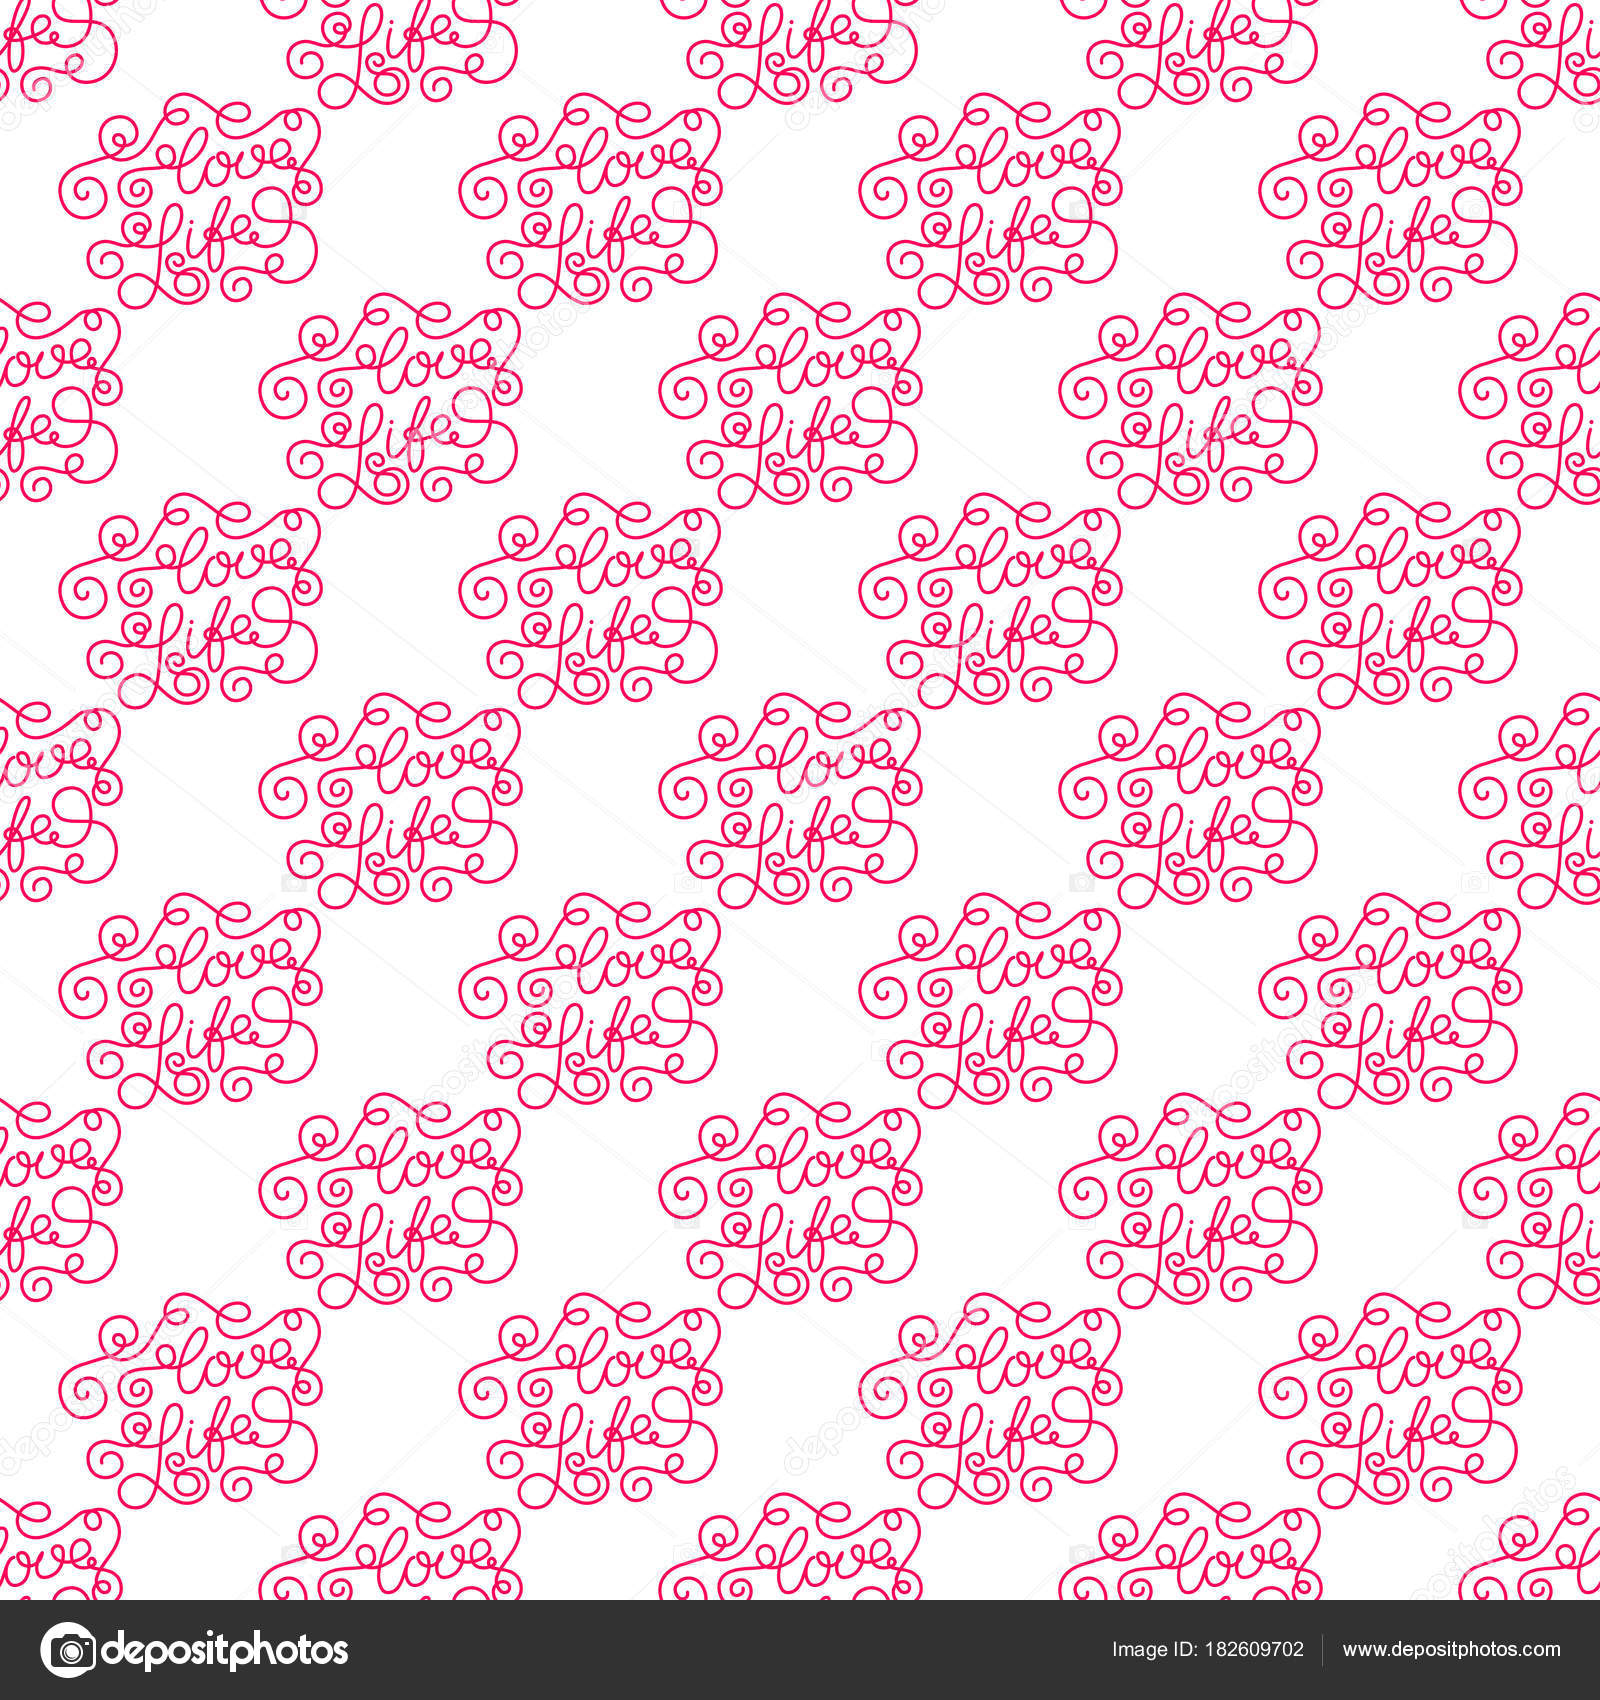 Valentines day romantic phrases seamless pattern background romantic phrases seamless pattern background template for a business card banner colourmoves